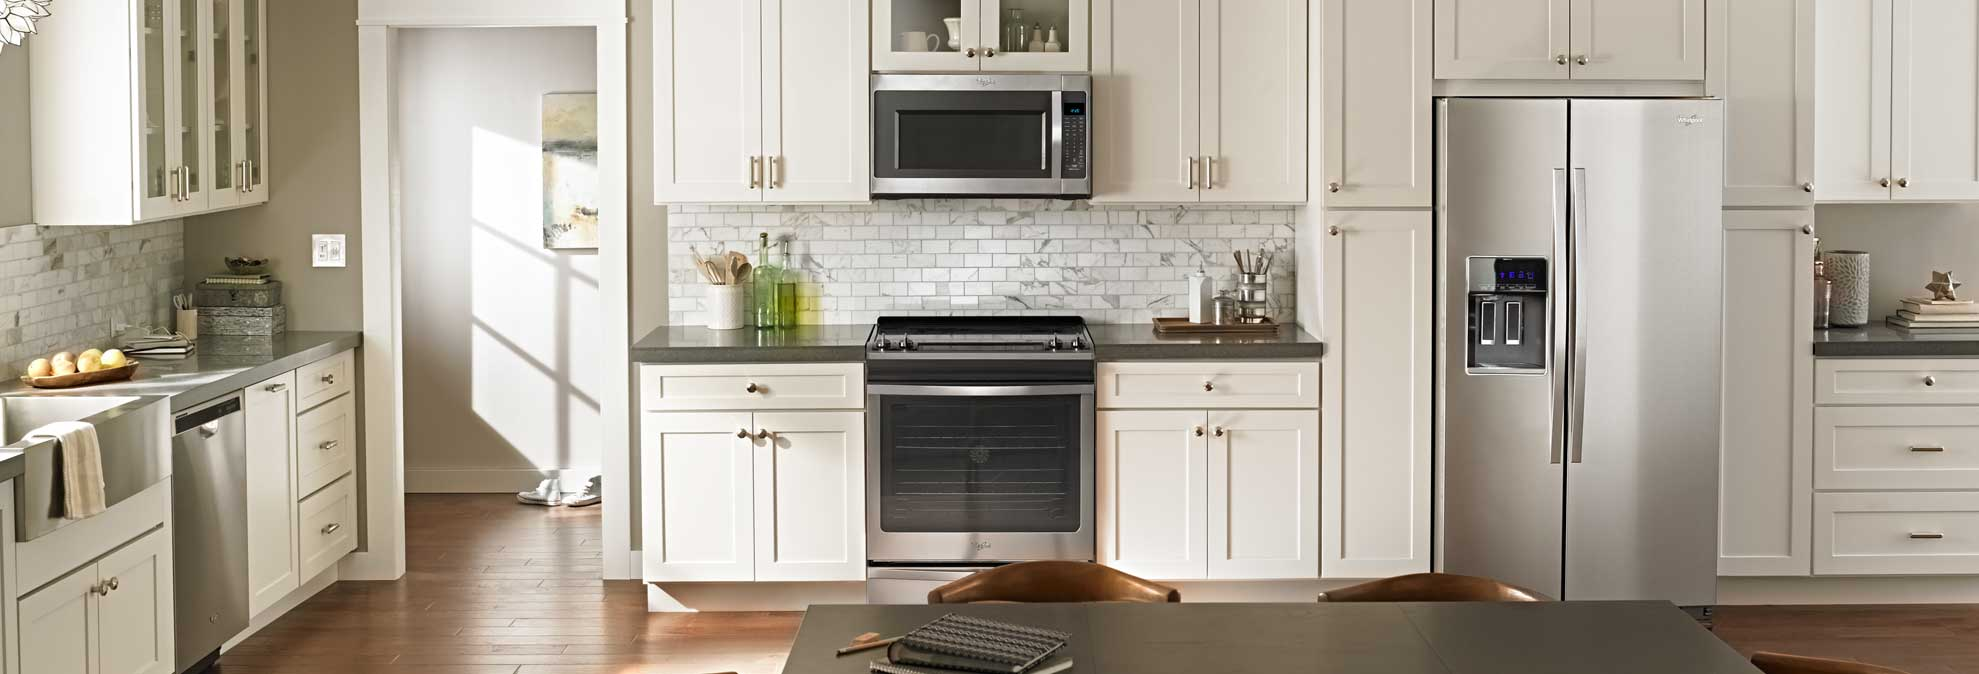 Consumer Reports Kitchen Appliances Magazine